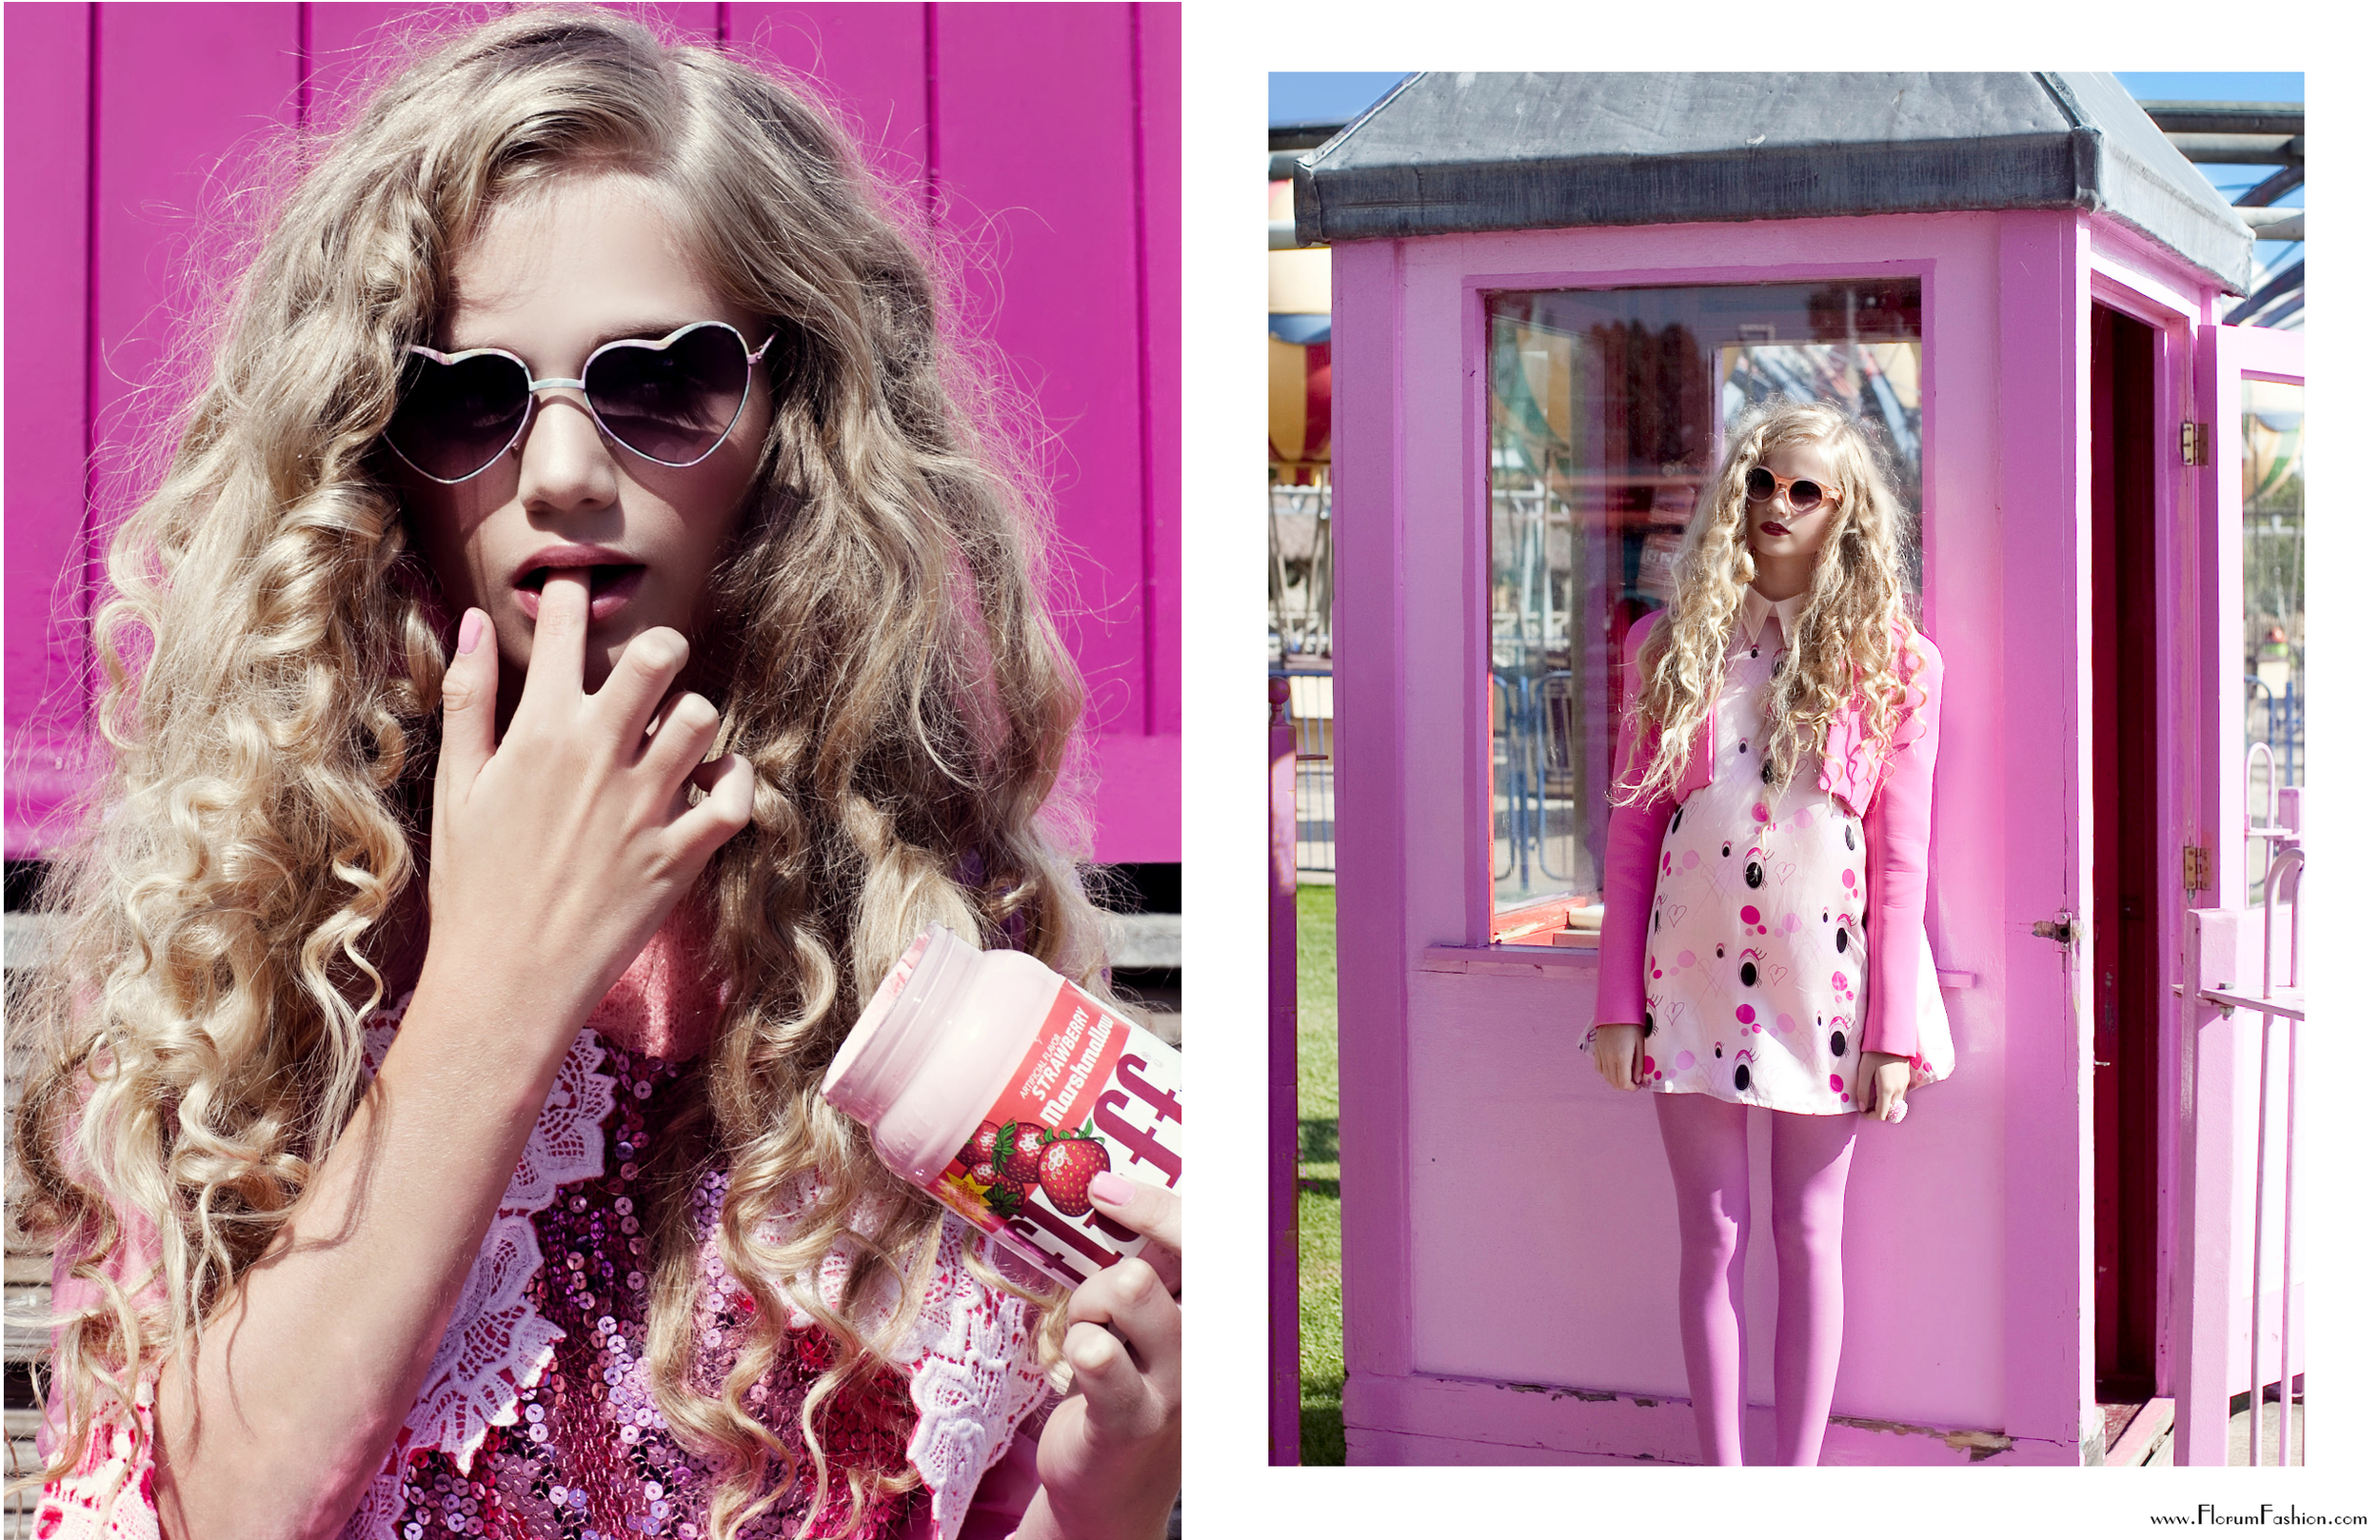 Pink by Xanthe Hutchison - Florum Fashion Magazine - styled by Zoe Hancok - We are Cow - Editorial Archive January 2014 - Slow Fashion